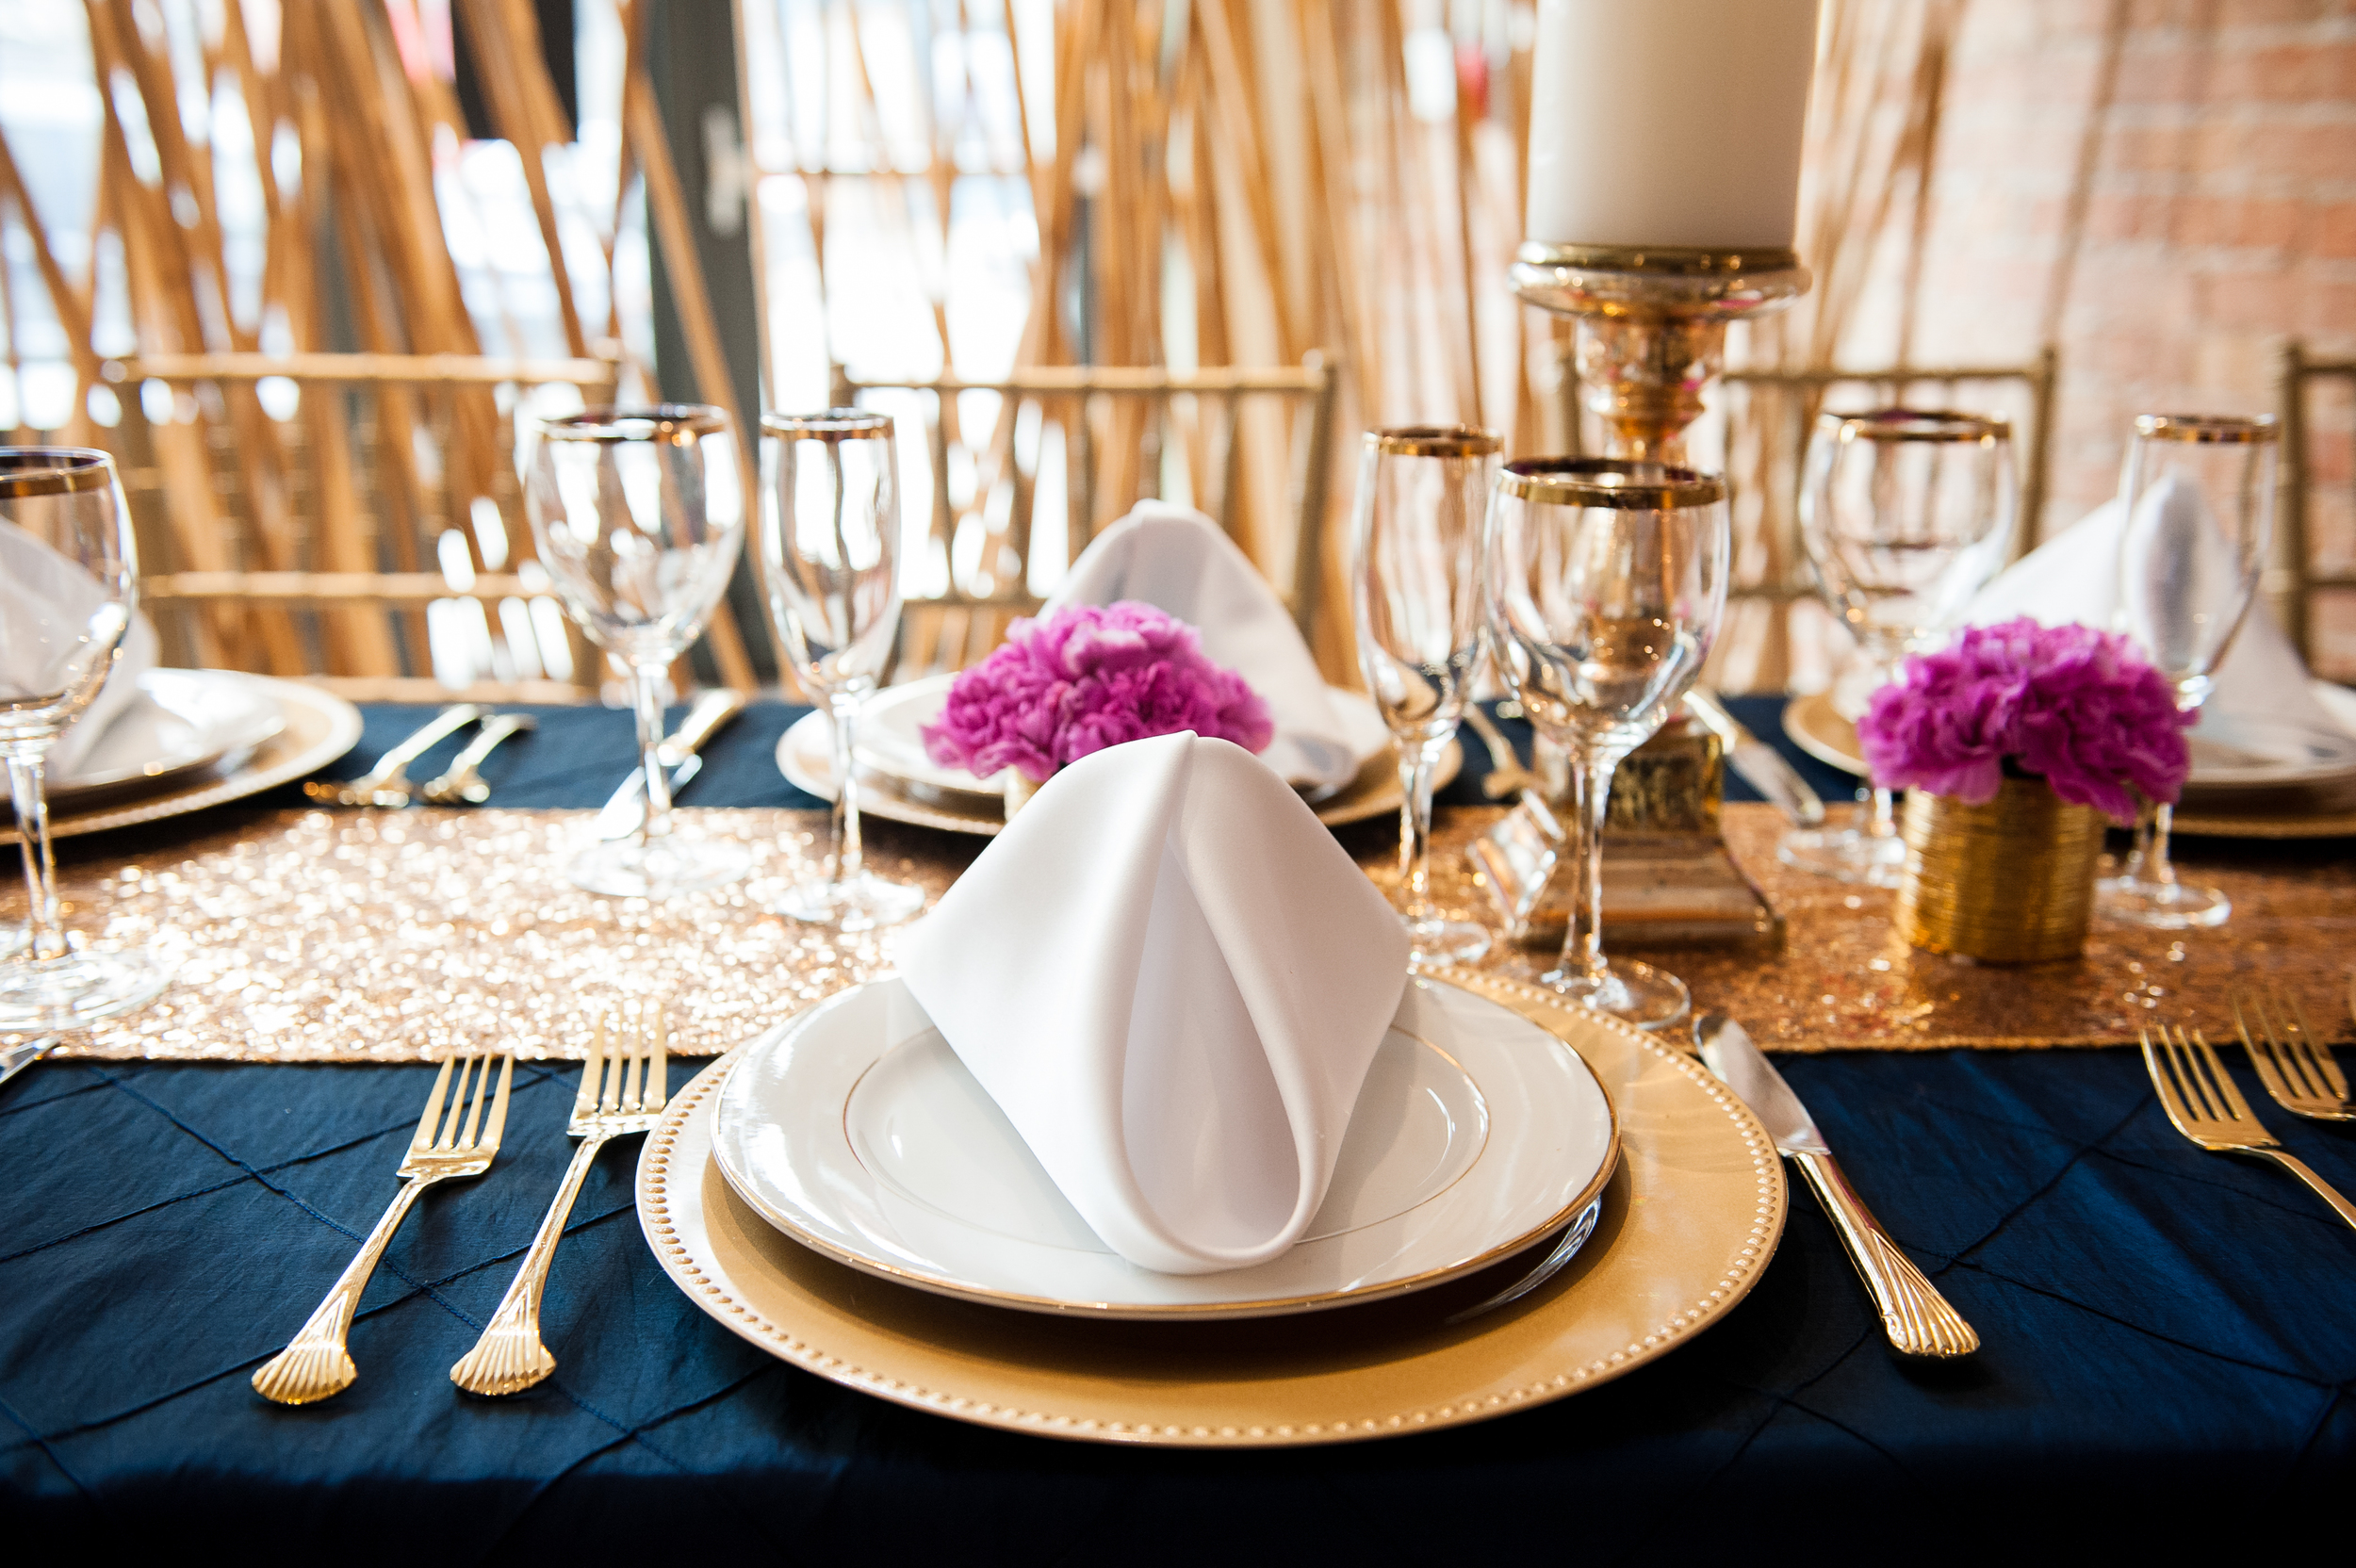 chicago wedding caterer gold place setting-10.jpg